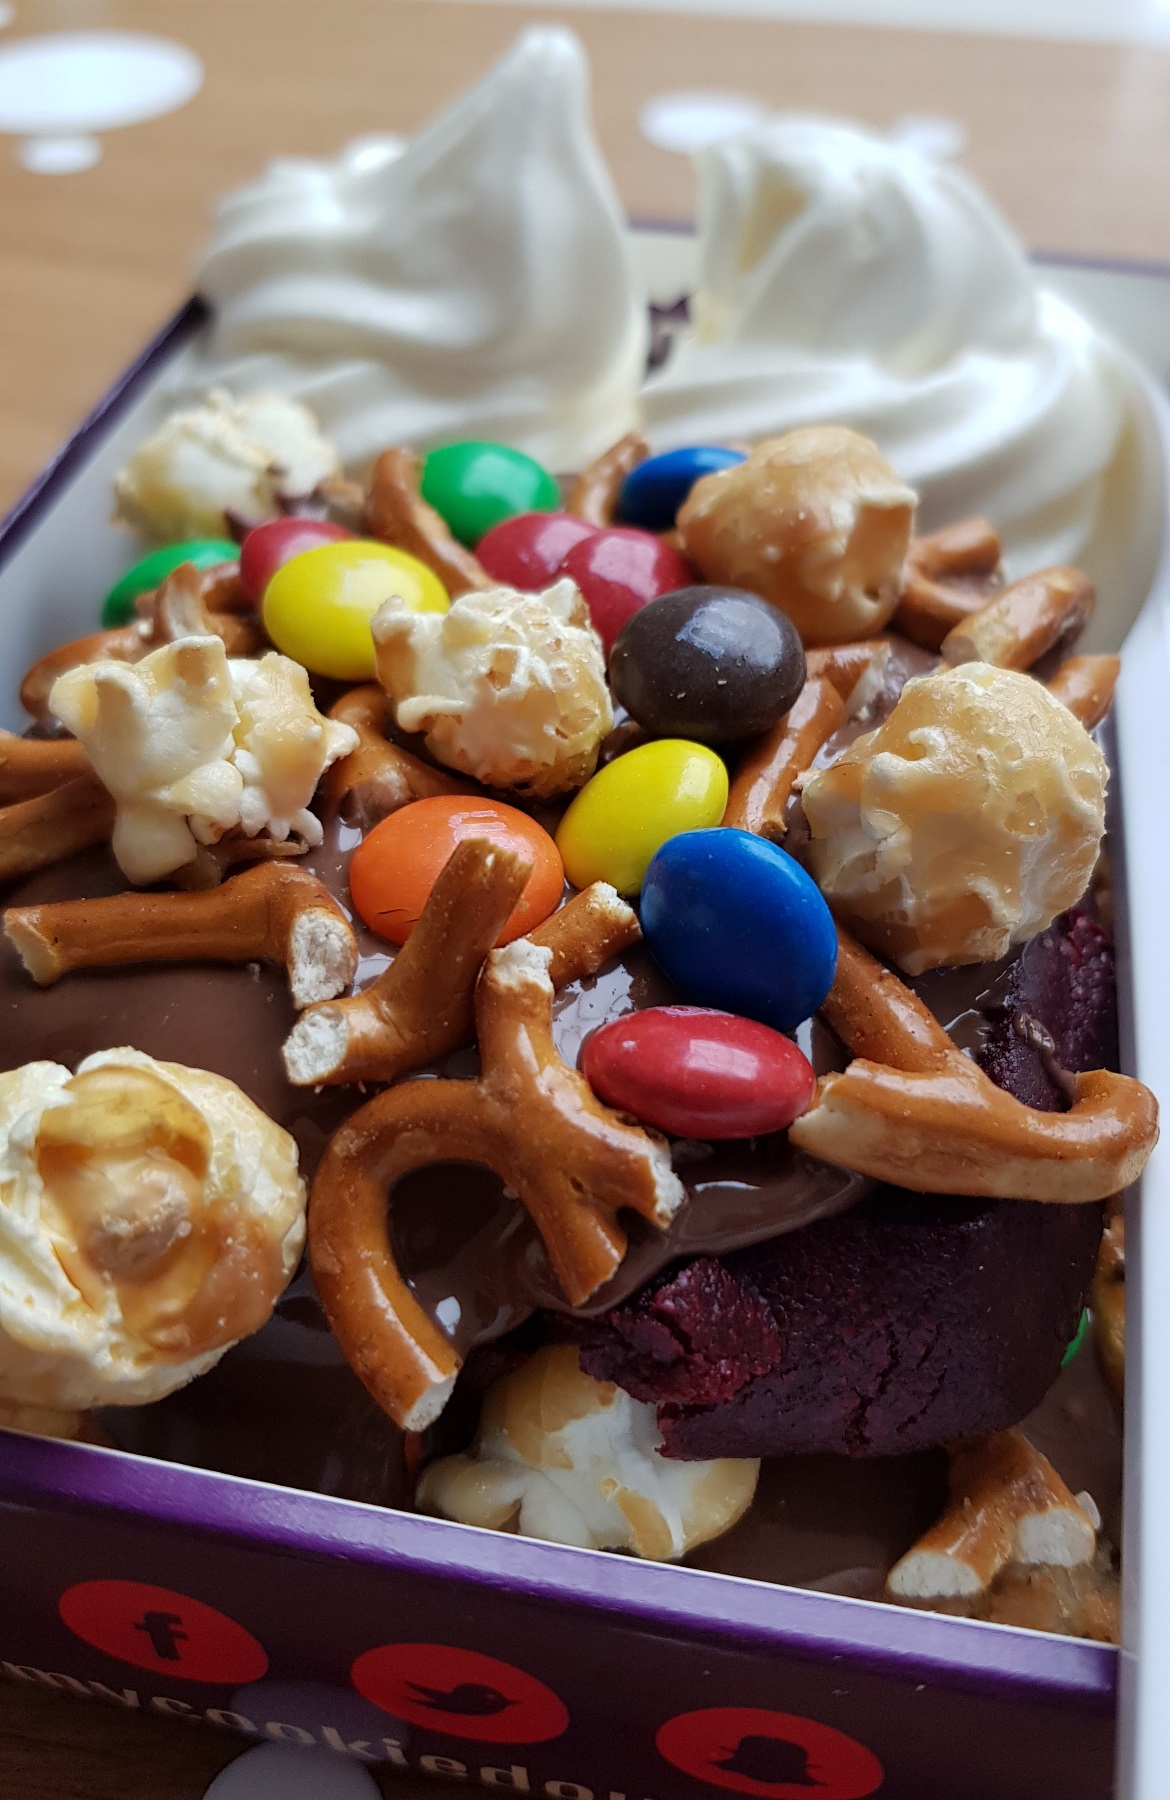 Movie Night at My Cookie Dough - Cheering Yourself up in Leeds by BeckyBecky Blogs